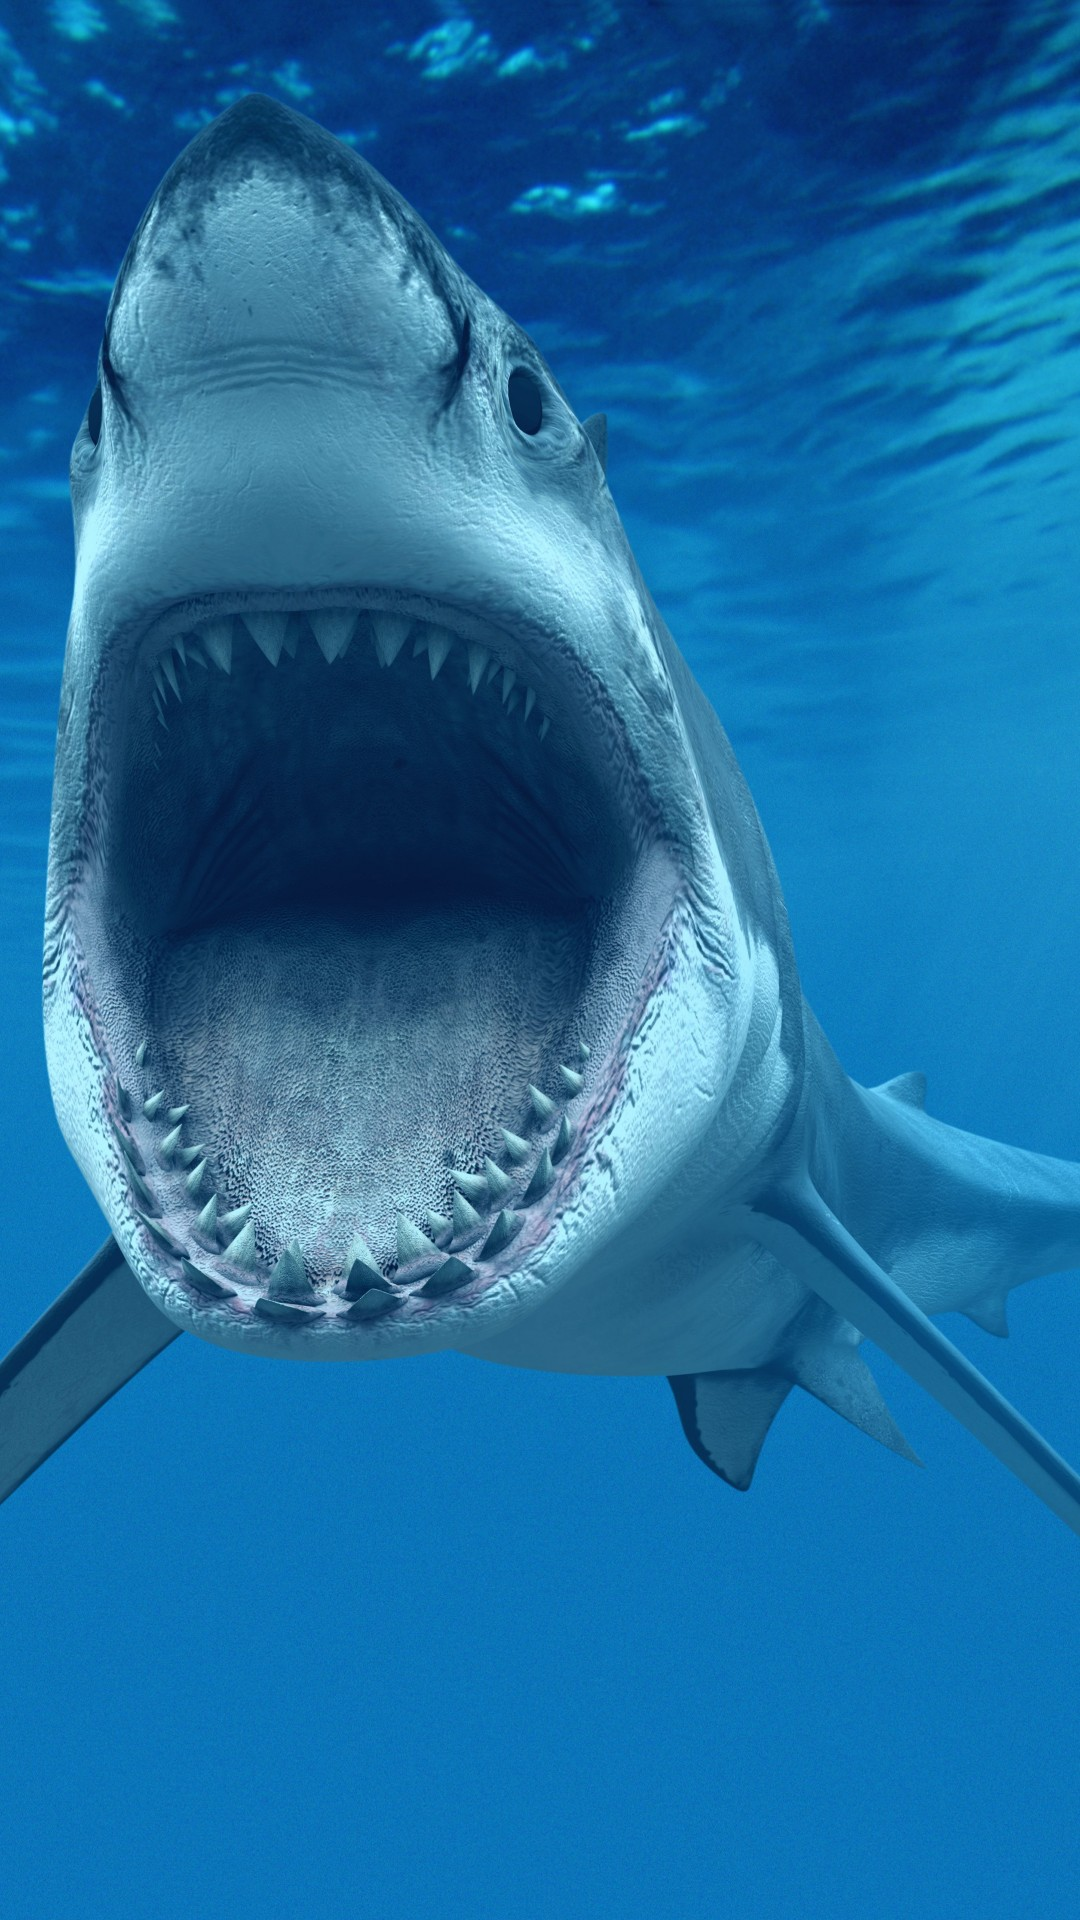 Wallpaper Shark Underwater Best Diving Sites Animals 4683